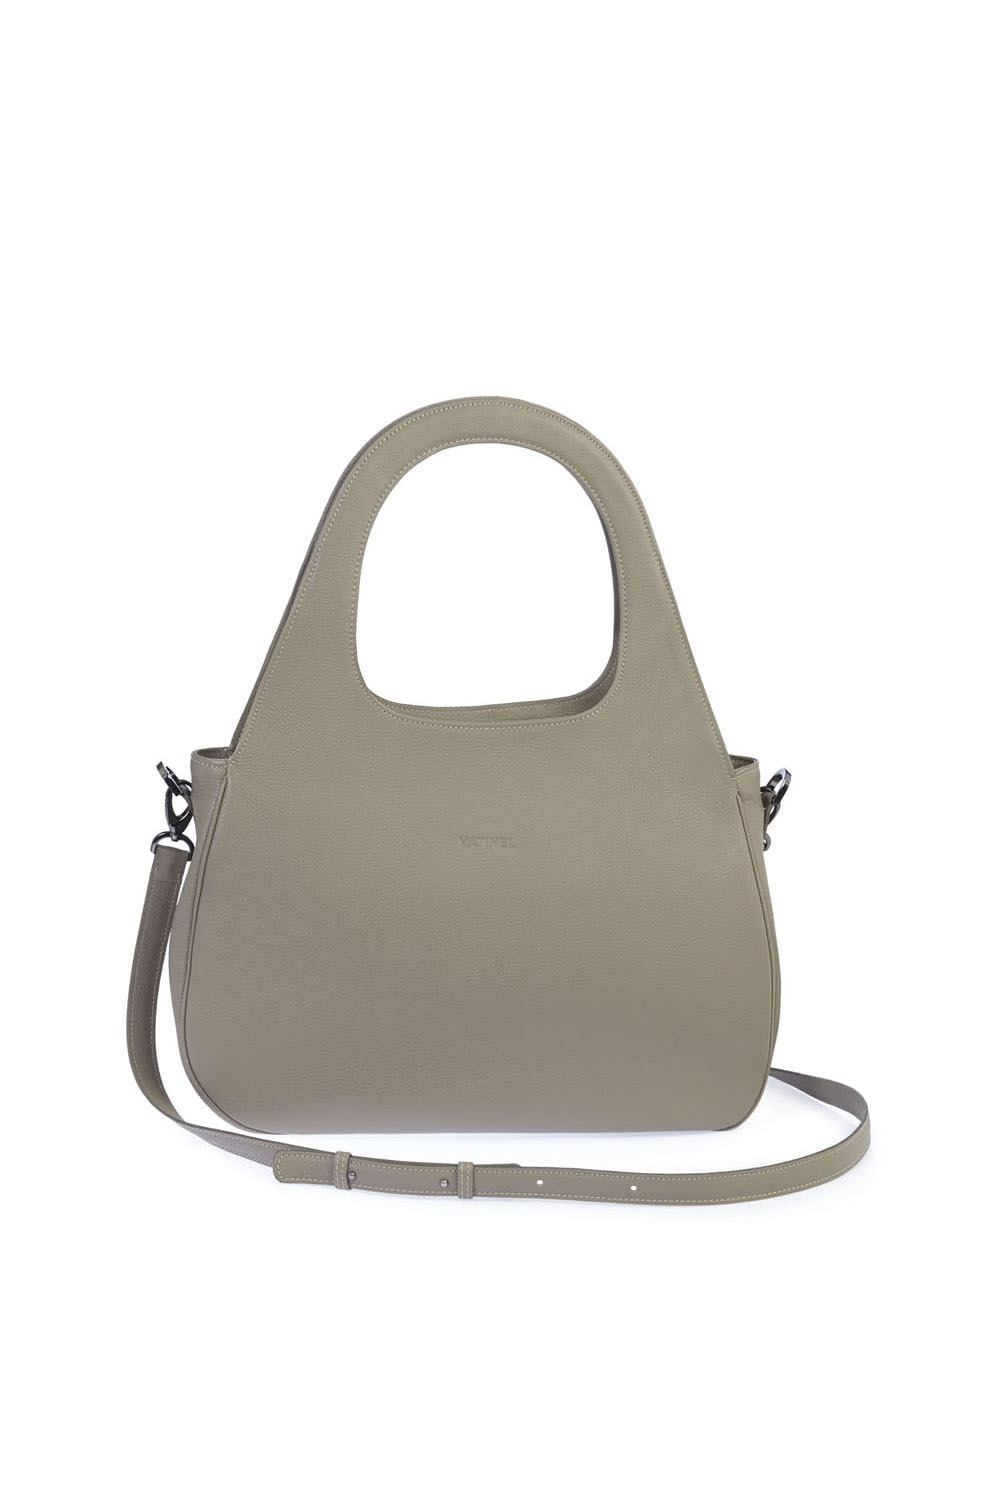 VATINEL HANDBAGS BERLIN CLAY